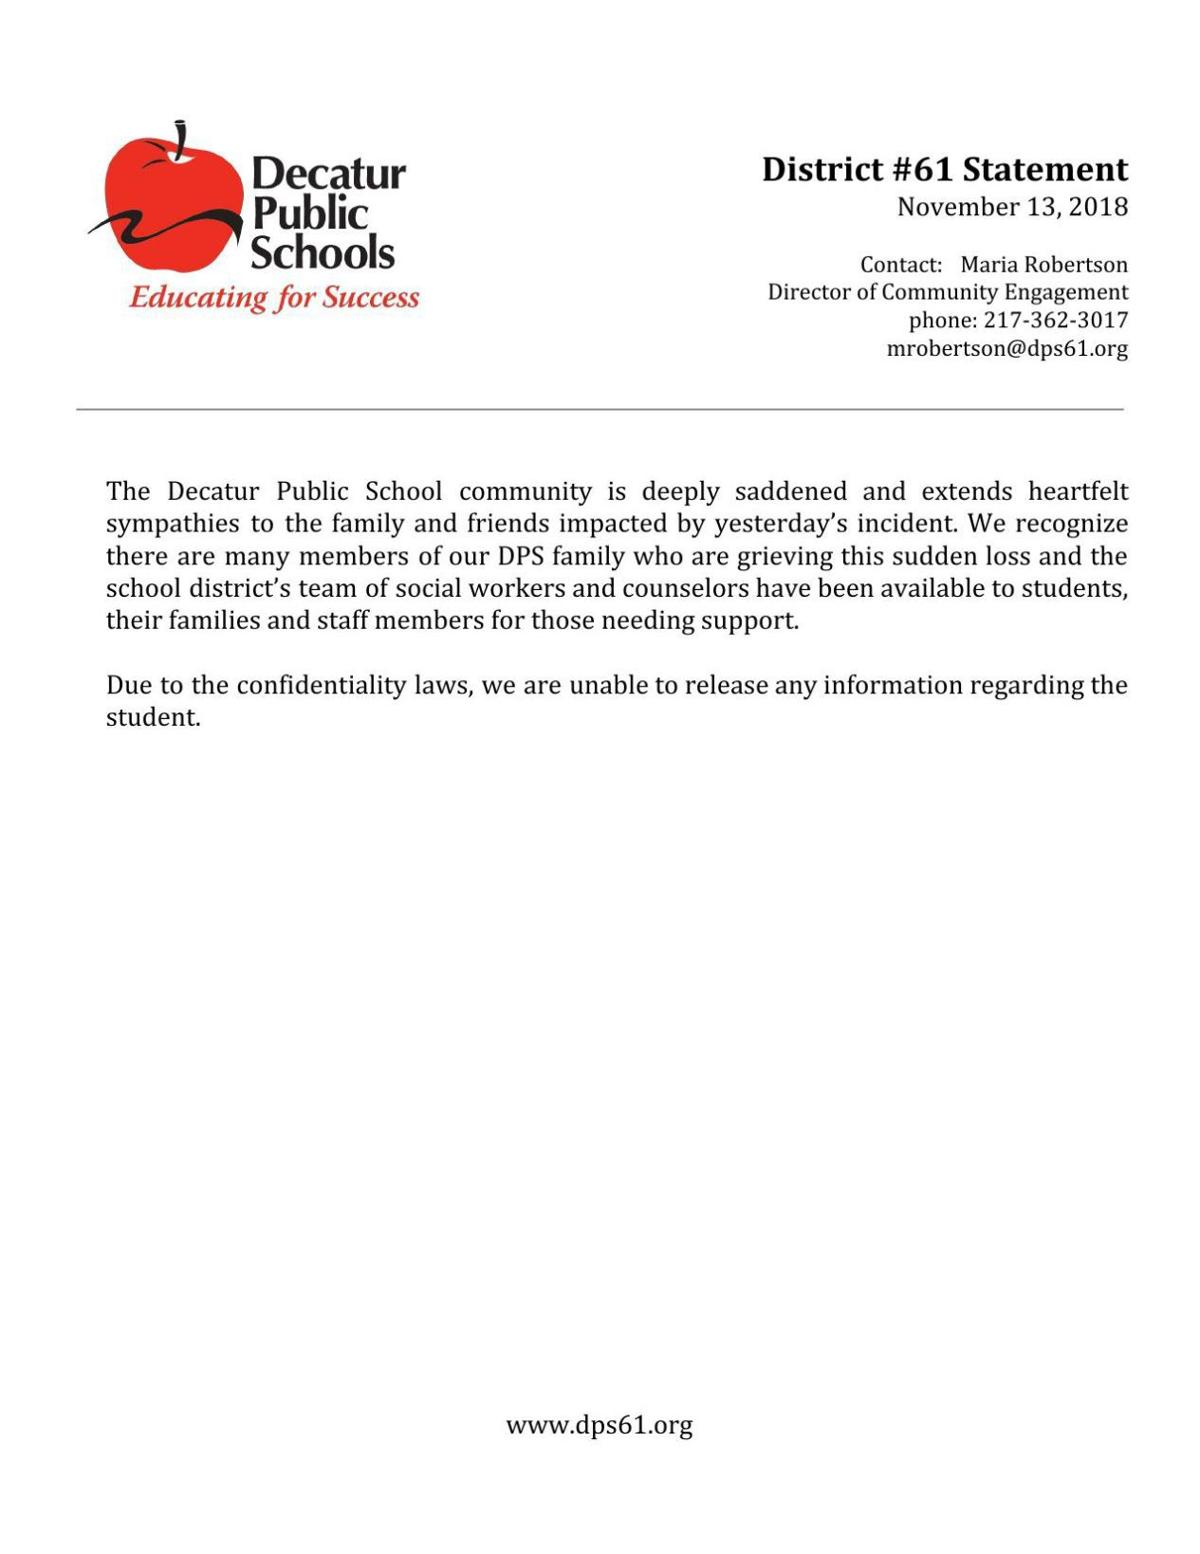 DPS Statement Nov. 13